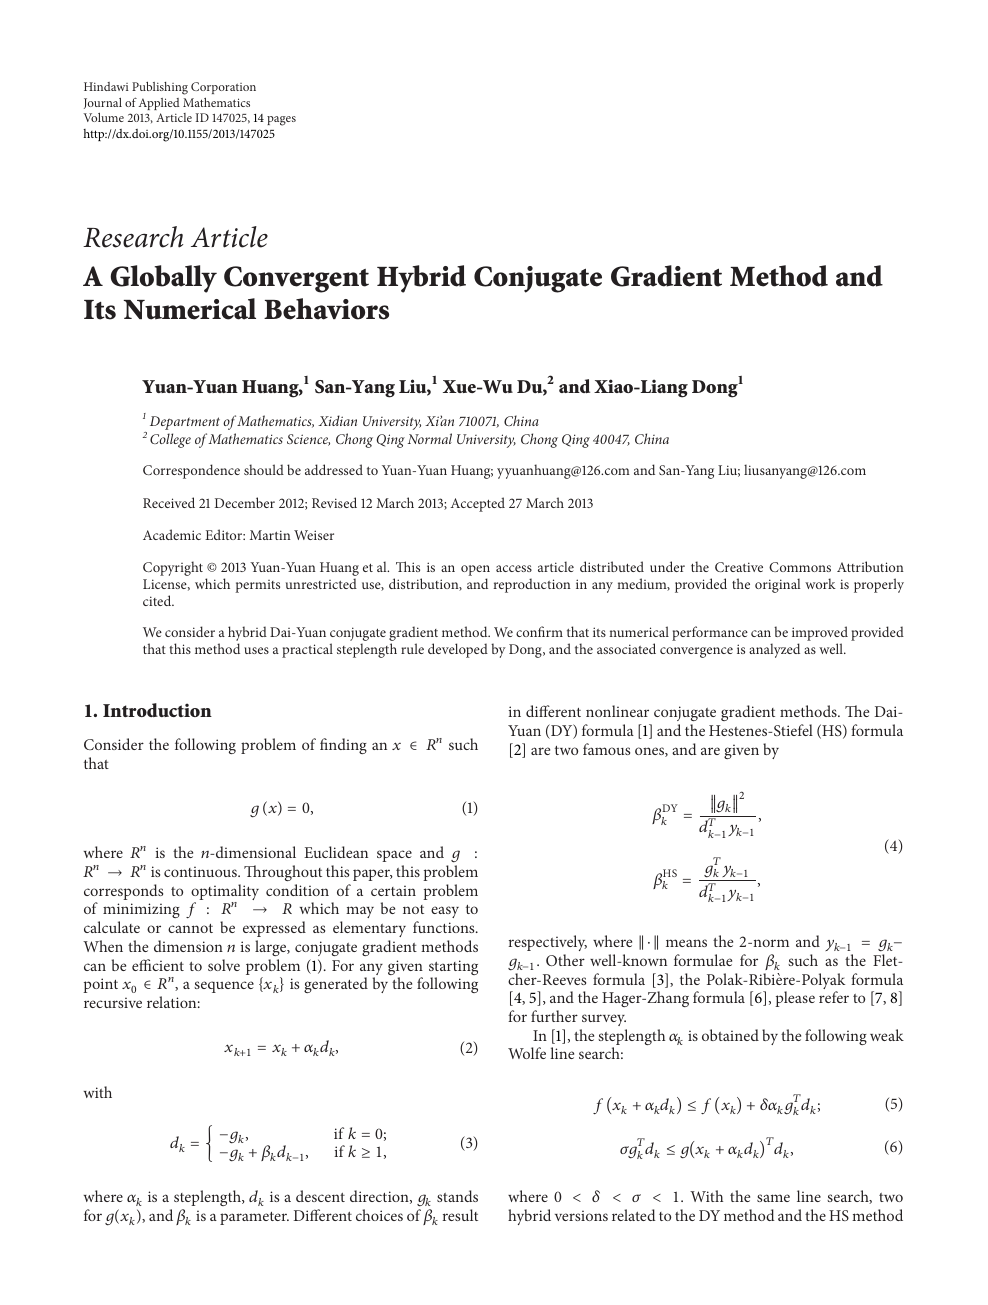 A Globally Convergent Hybrid Conjugate Gradient Method and